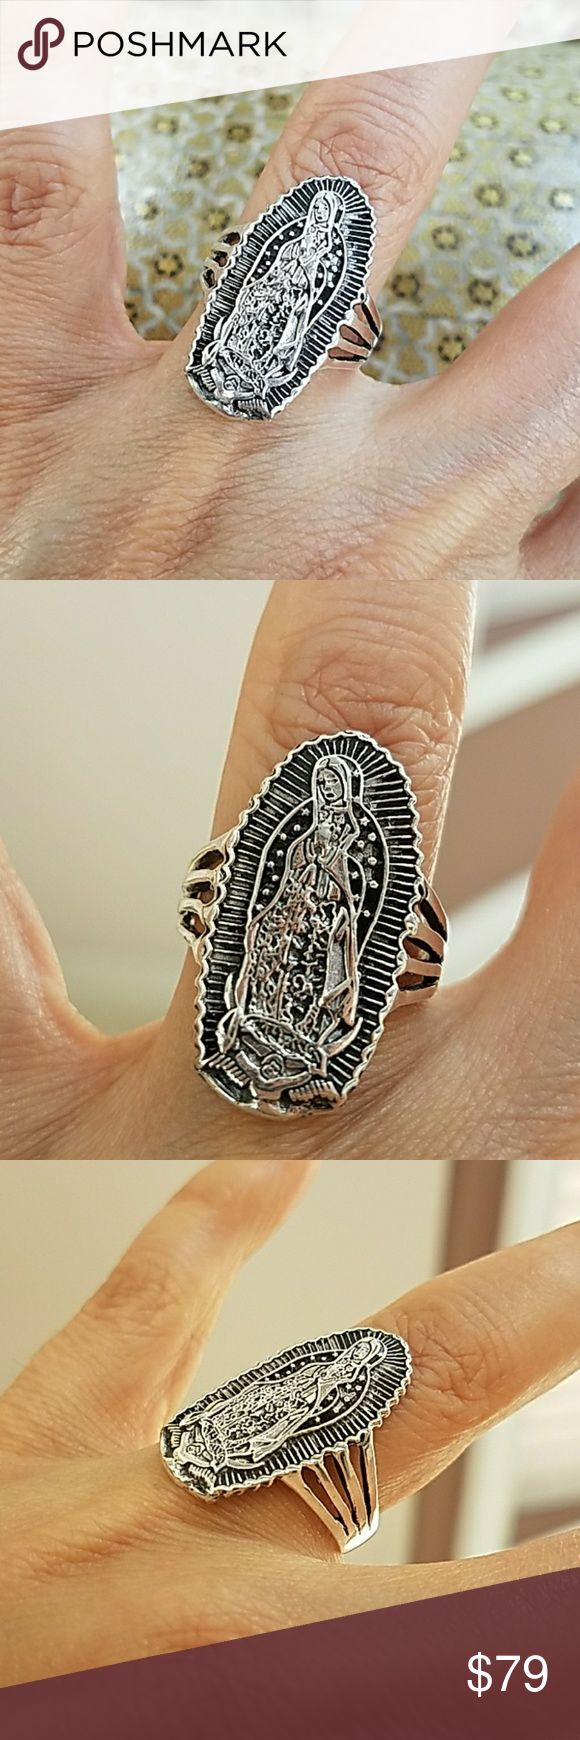 Religious Anillo de virgen de Guadalupe angel Ring UNISEX Religious Ring Anillo de virgen de Guadalupe Ring  14k White Gold plated Antique look Religious Ring Band. Available in all sizes. For men or women Please message me your ring size before purchase  Item#DS1221 Anillo de virgen de Guadalupe chaoeado Virgen Mary Jewelry Rings